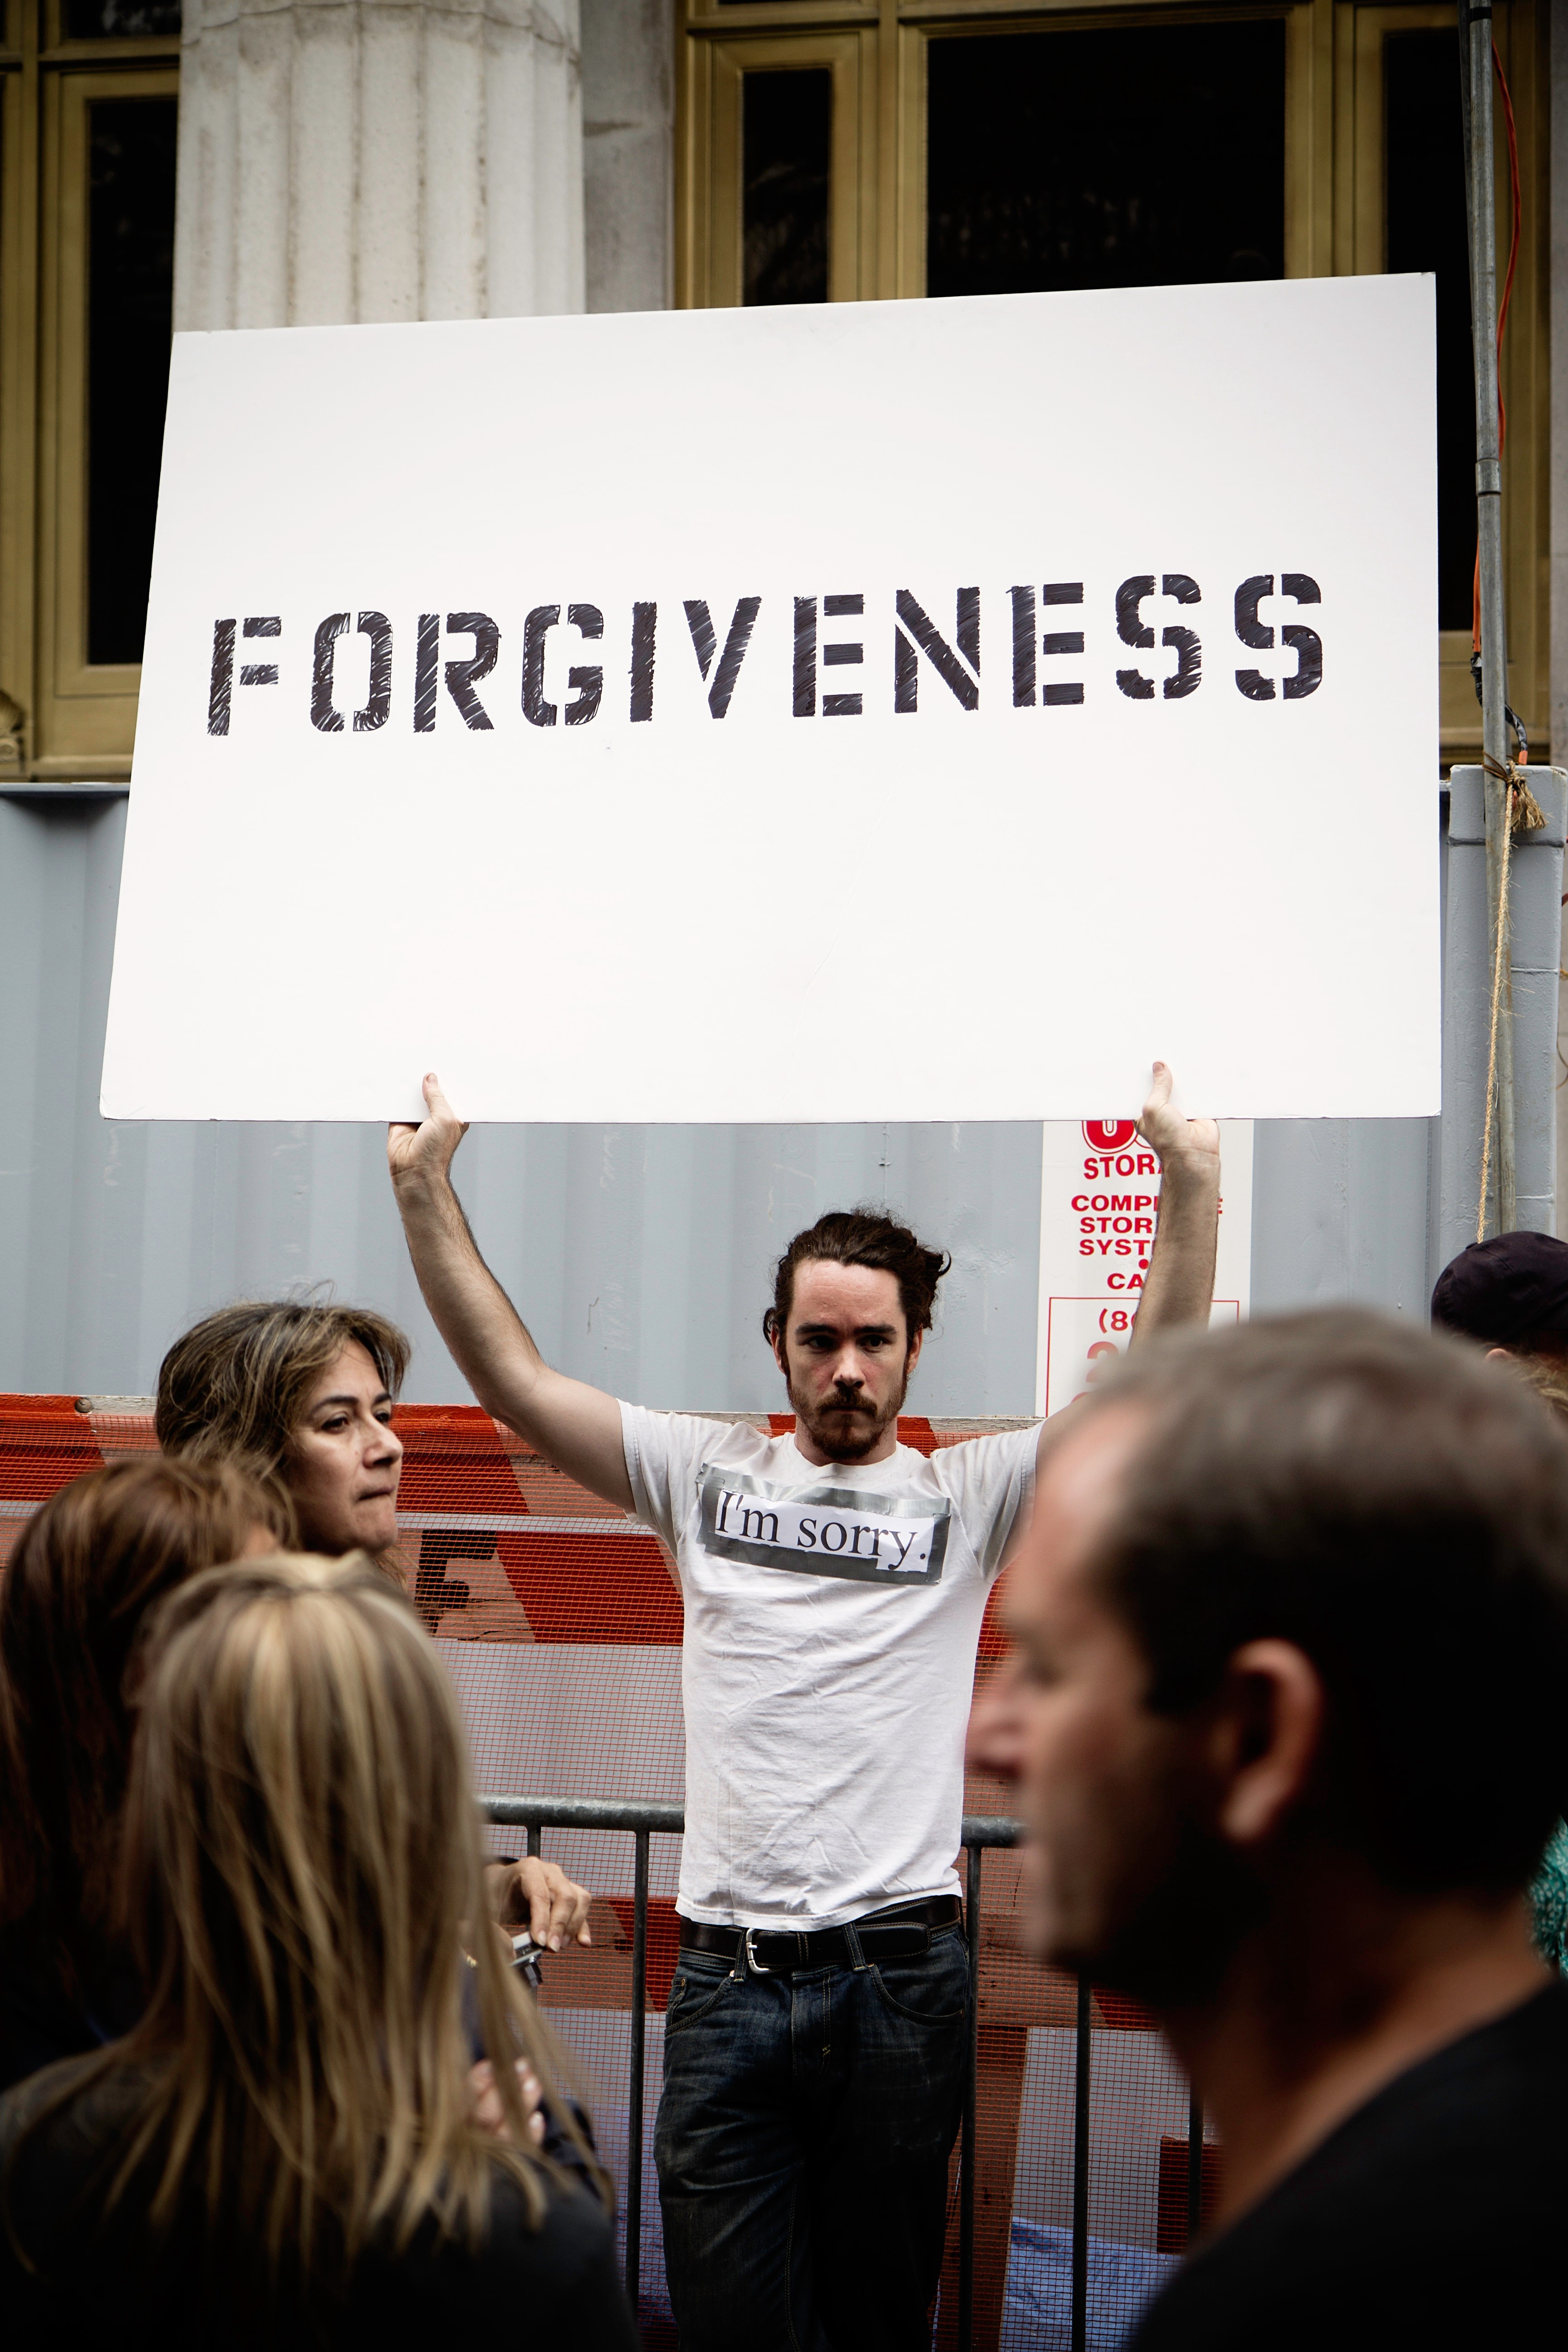 """Man holding a sign that says """"Forgiveness"""" while wearing a white shirt that says """"I'm sorry""""."""